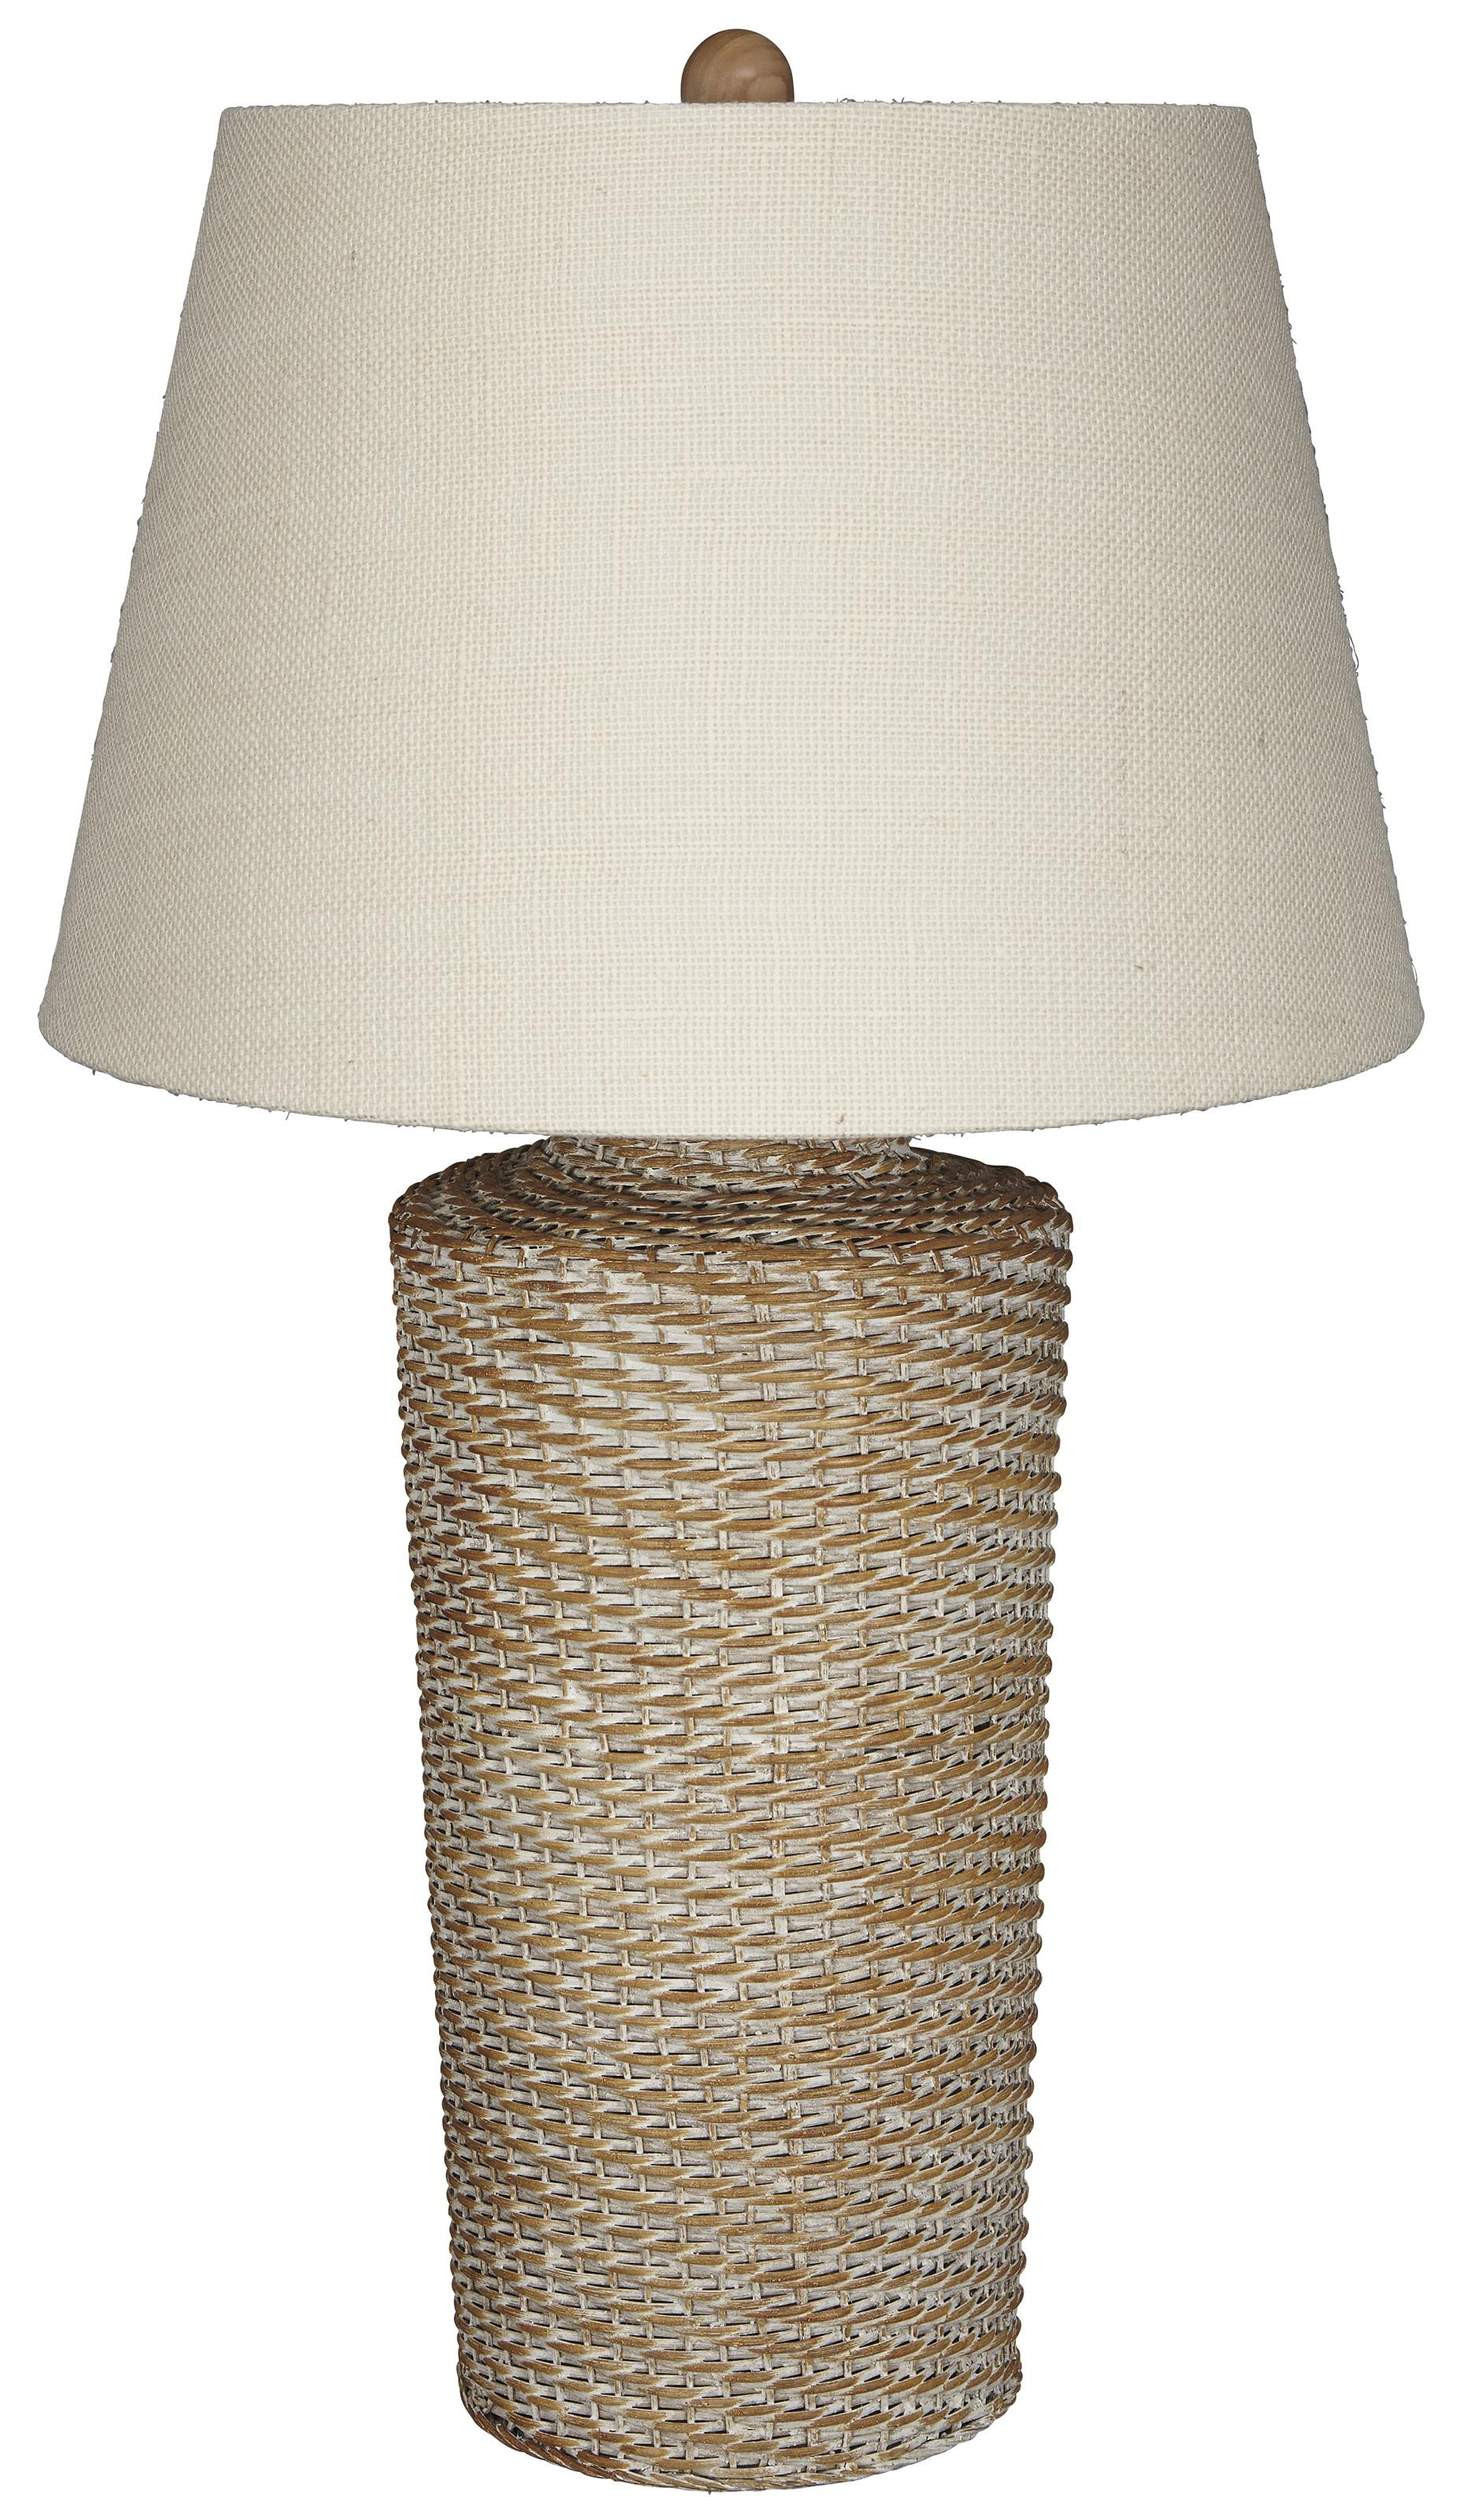 Signature Design by Ashley Lamps - Vintage Style Stefenney Rattan Table Lamp - Item Number: L327154